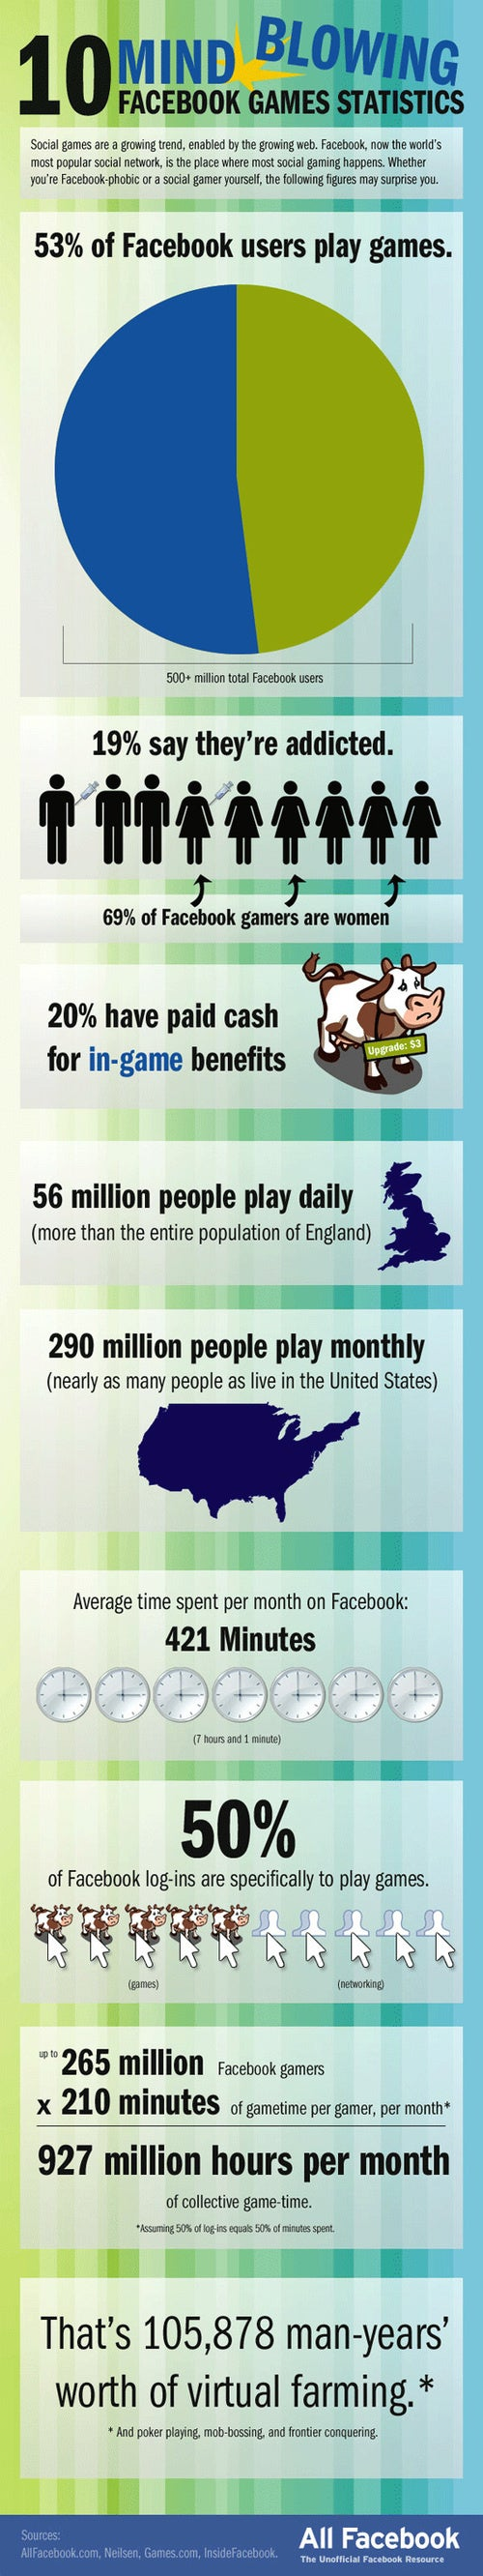 People Spend 927 Million Hours Per Month Playing Facebook Games